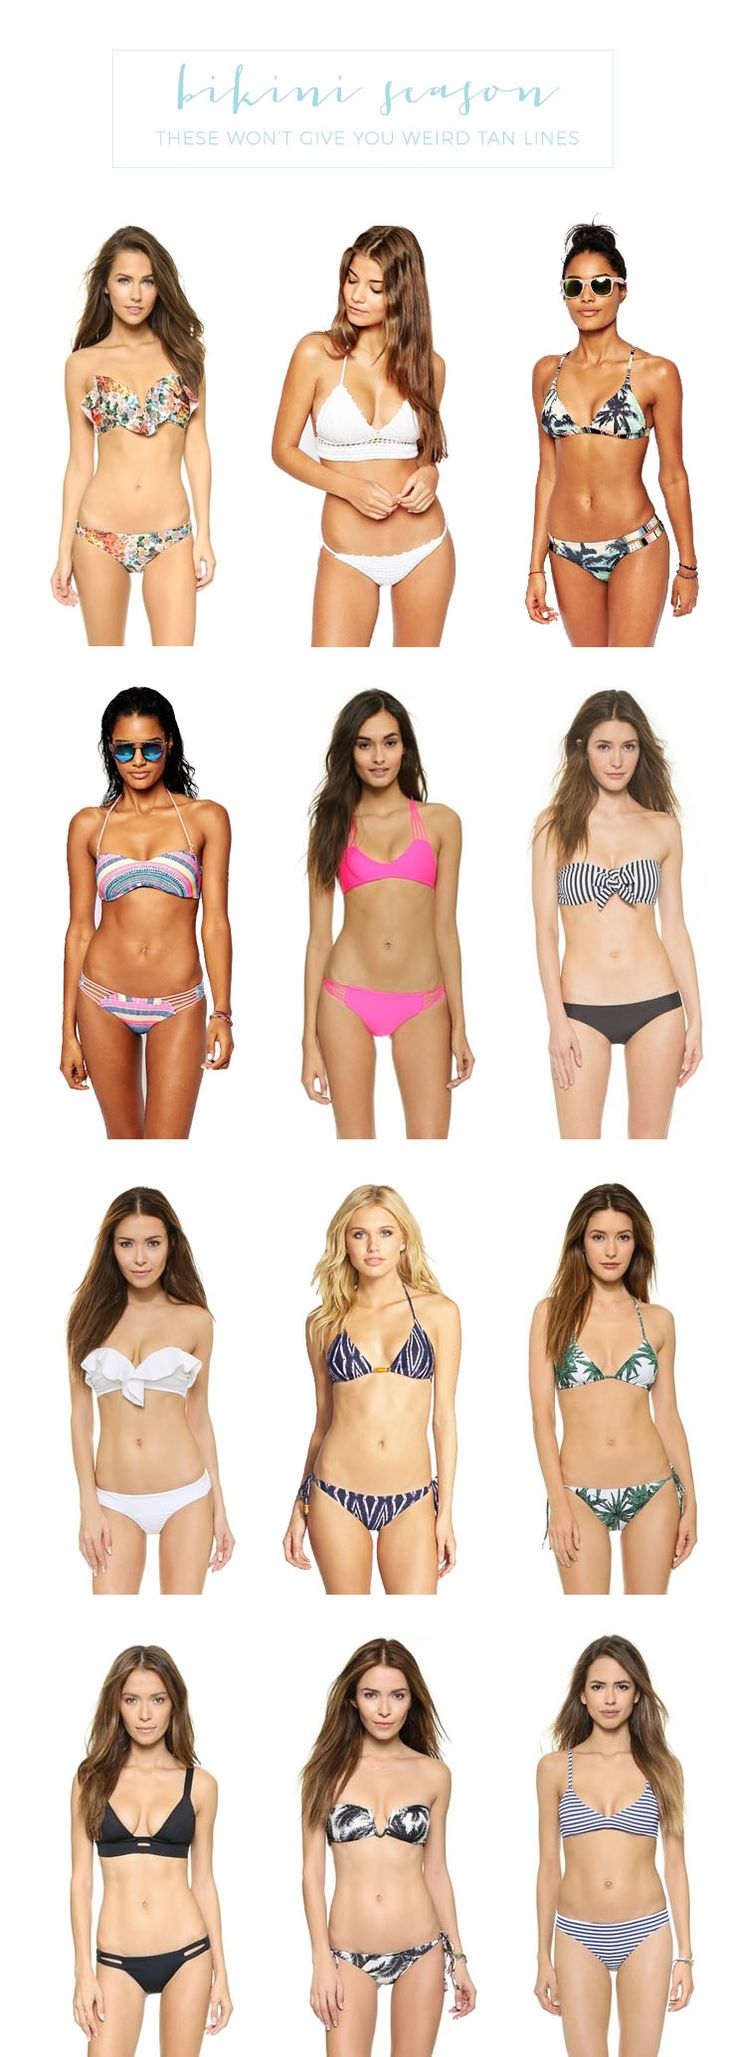 12 Affordable Bikinis That Won't Give You Weird Tan Lines - click through to shop!